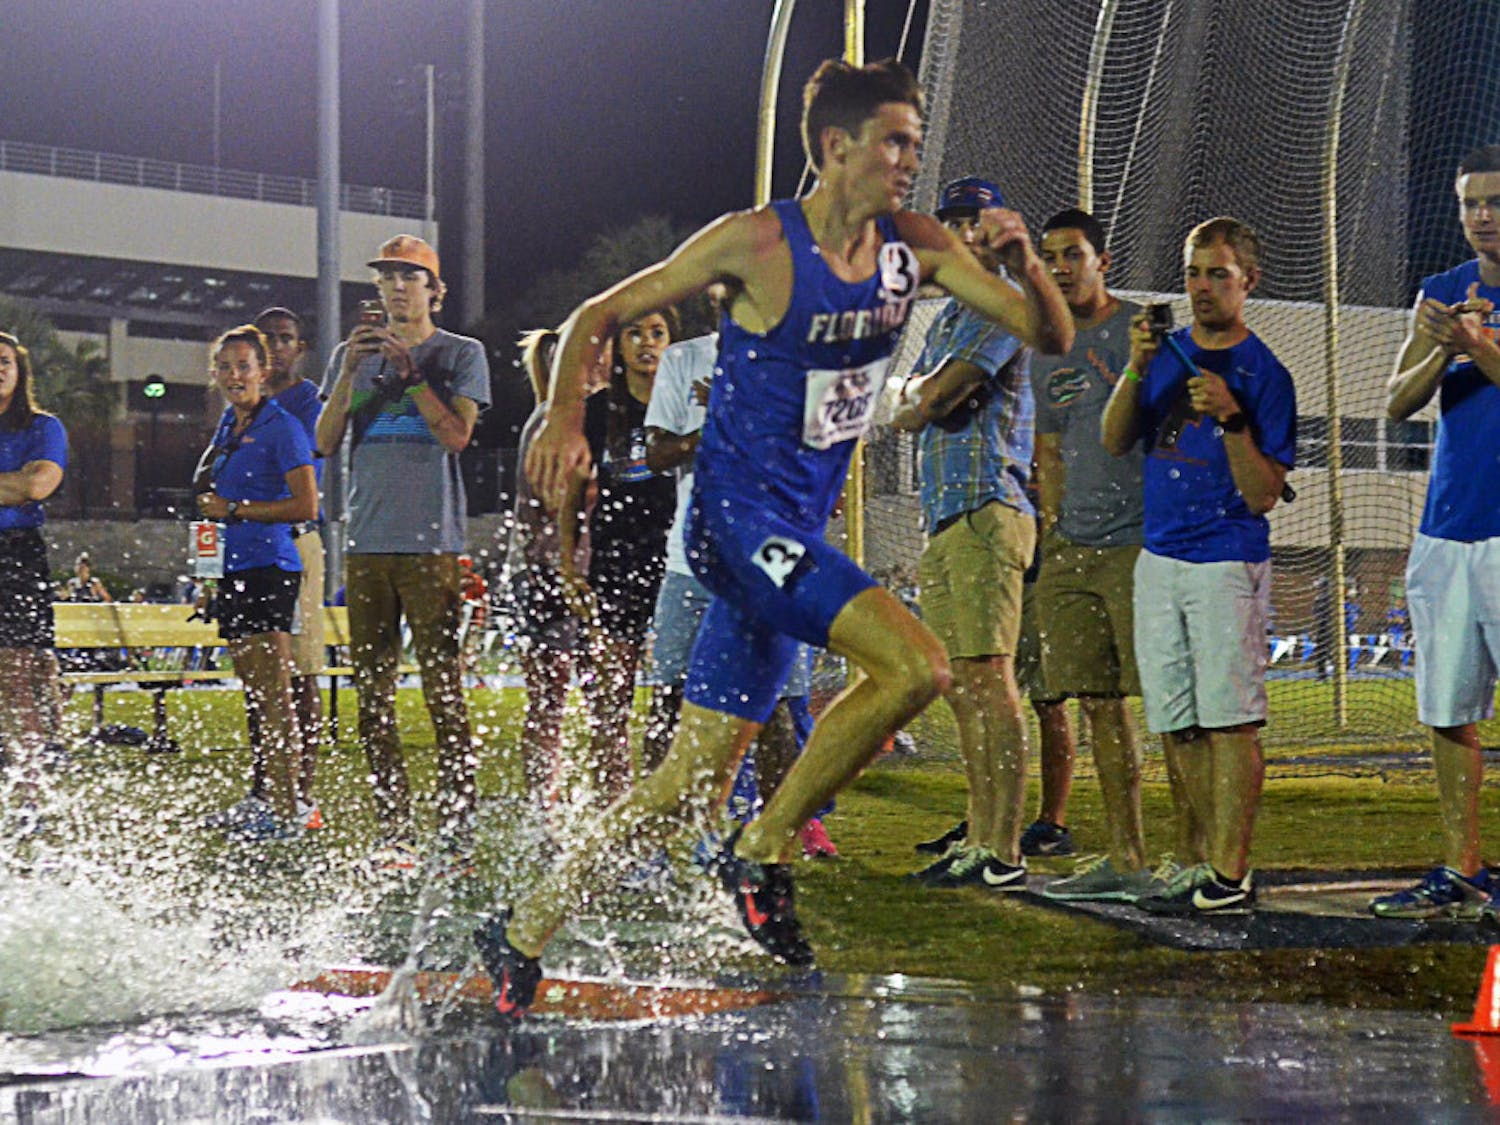 Mark Parrish races in the 3,000 meter steeplechase during the 2015 Florida Relays on April 3 at the Percy Beard Track.